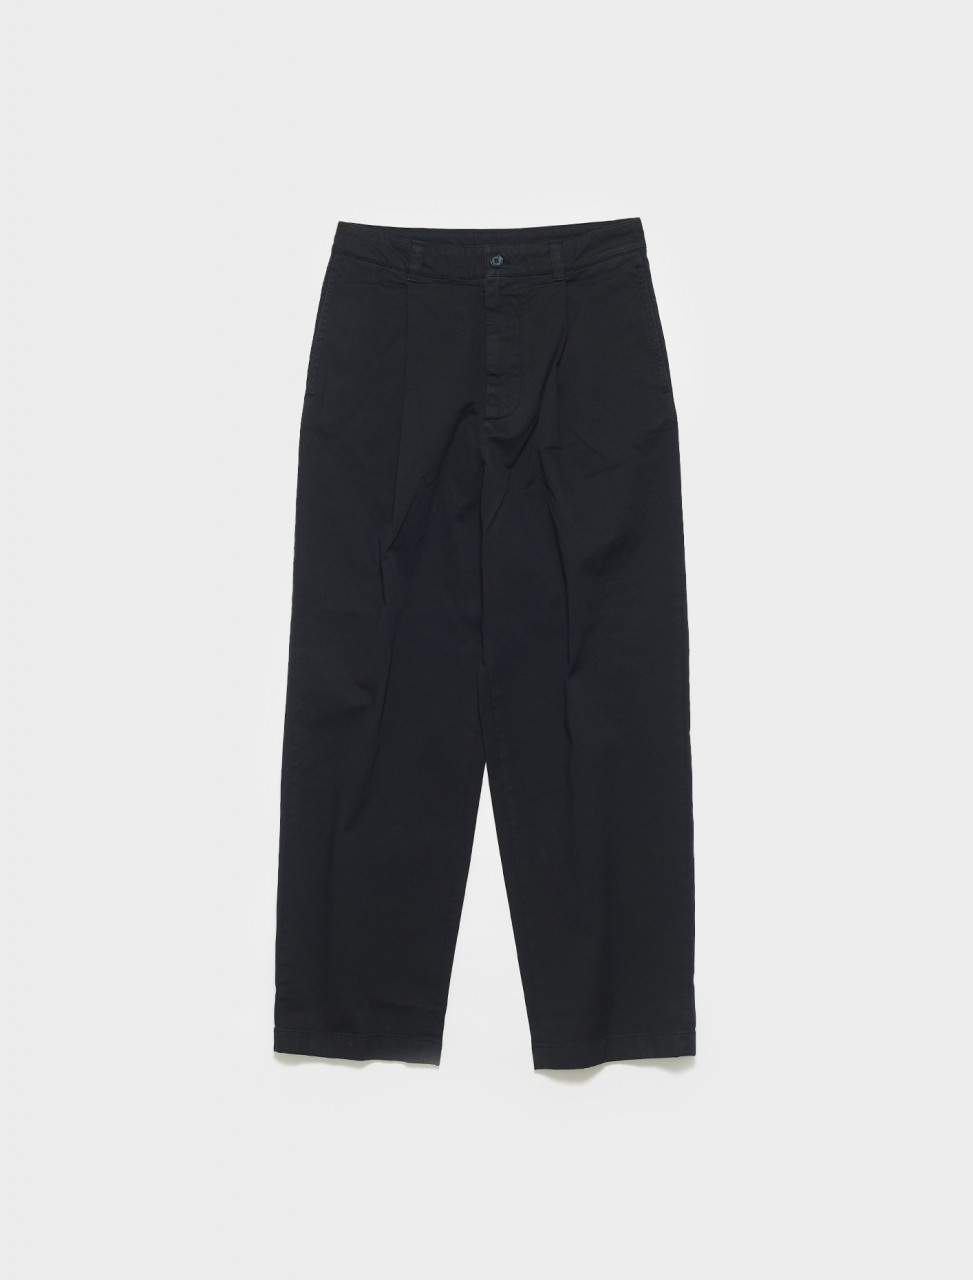 BK0364-900 ACNE STUDIOS PINO SUMMER TROUSERS IN BLACK